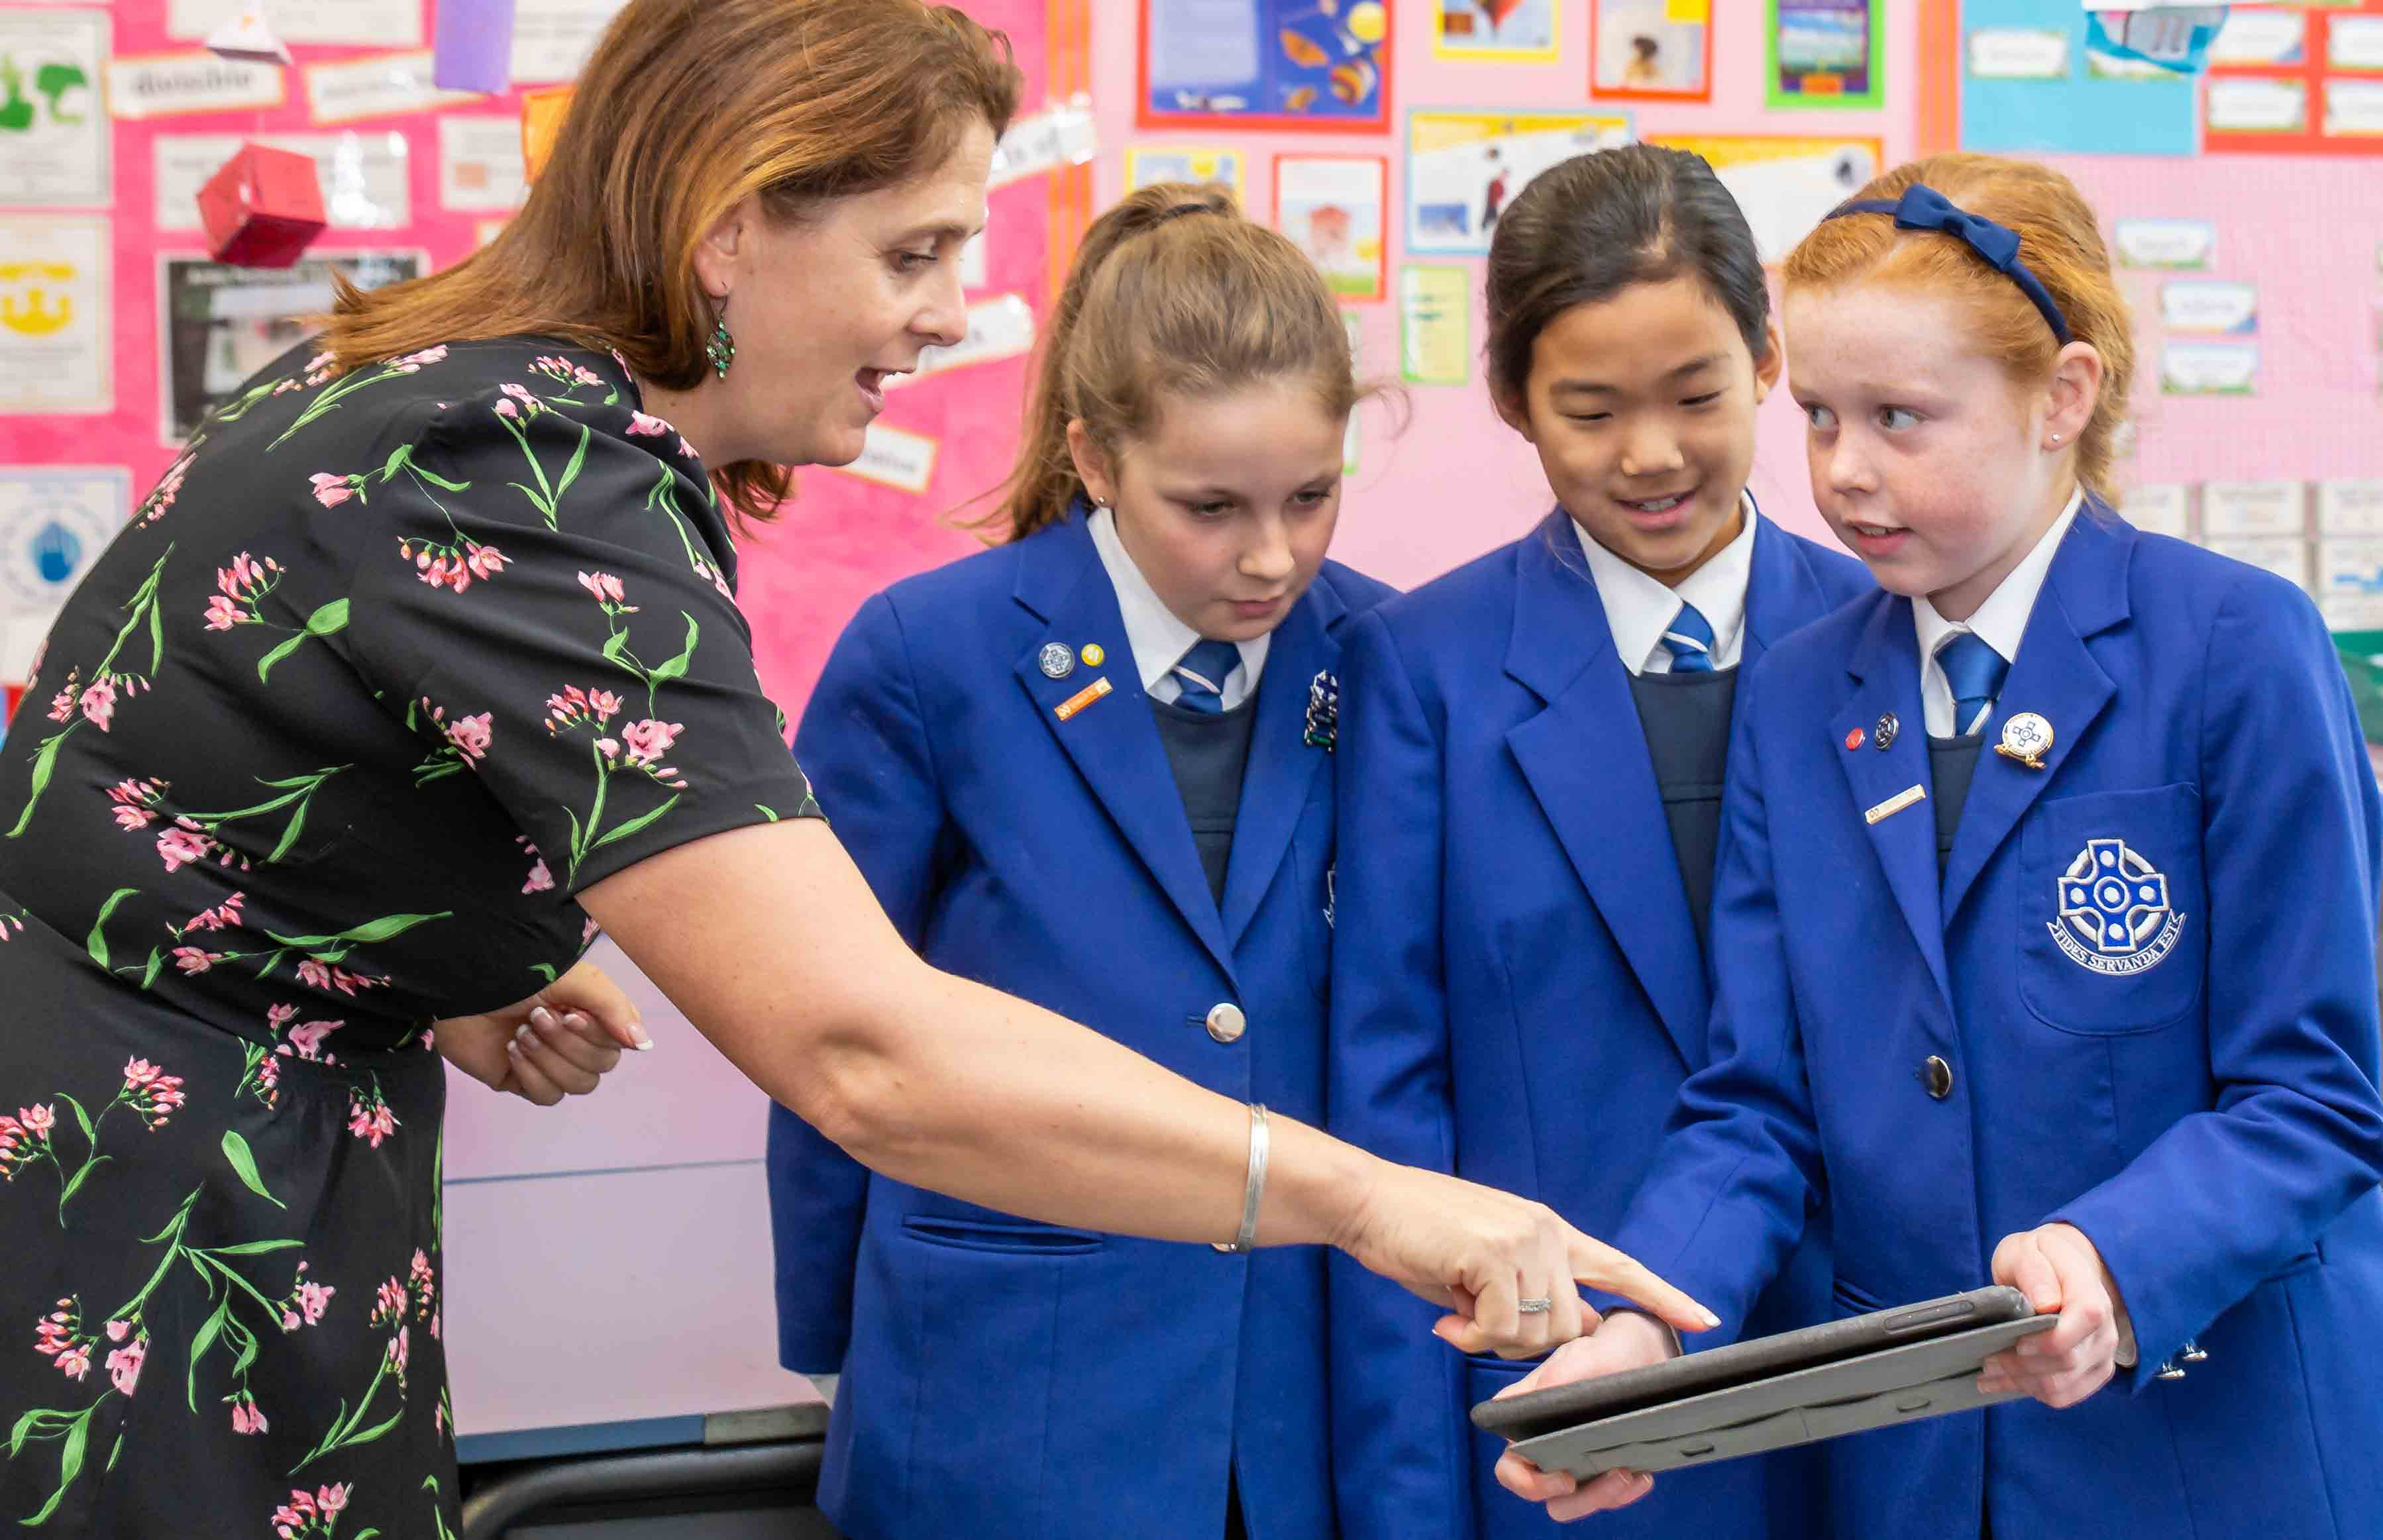 Saint-Kentigern-Girls-School-Enhanced-Learning-Programmes.jpg